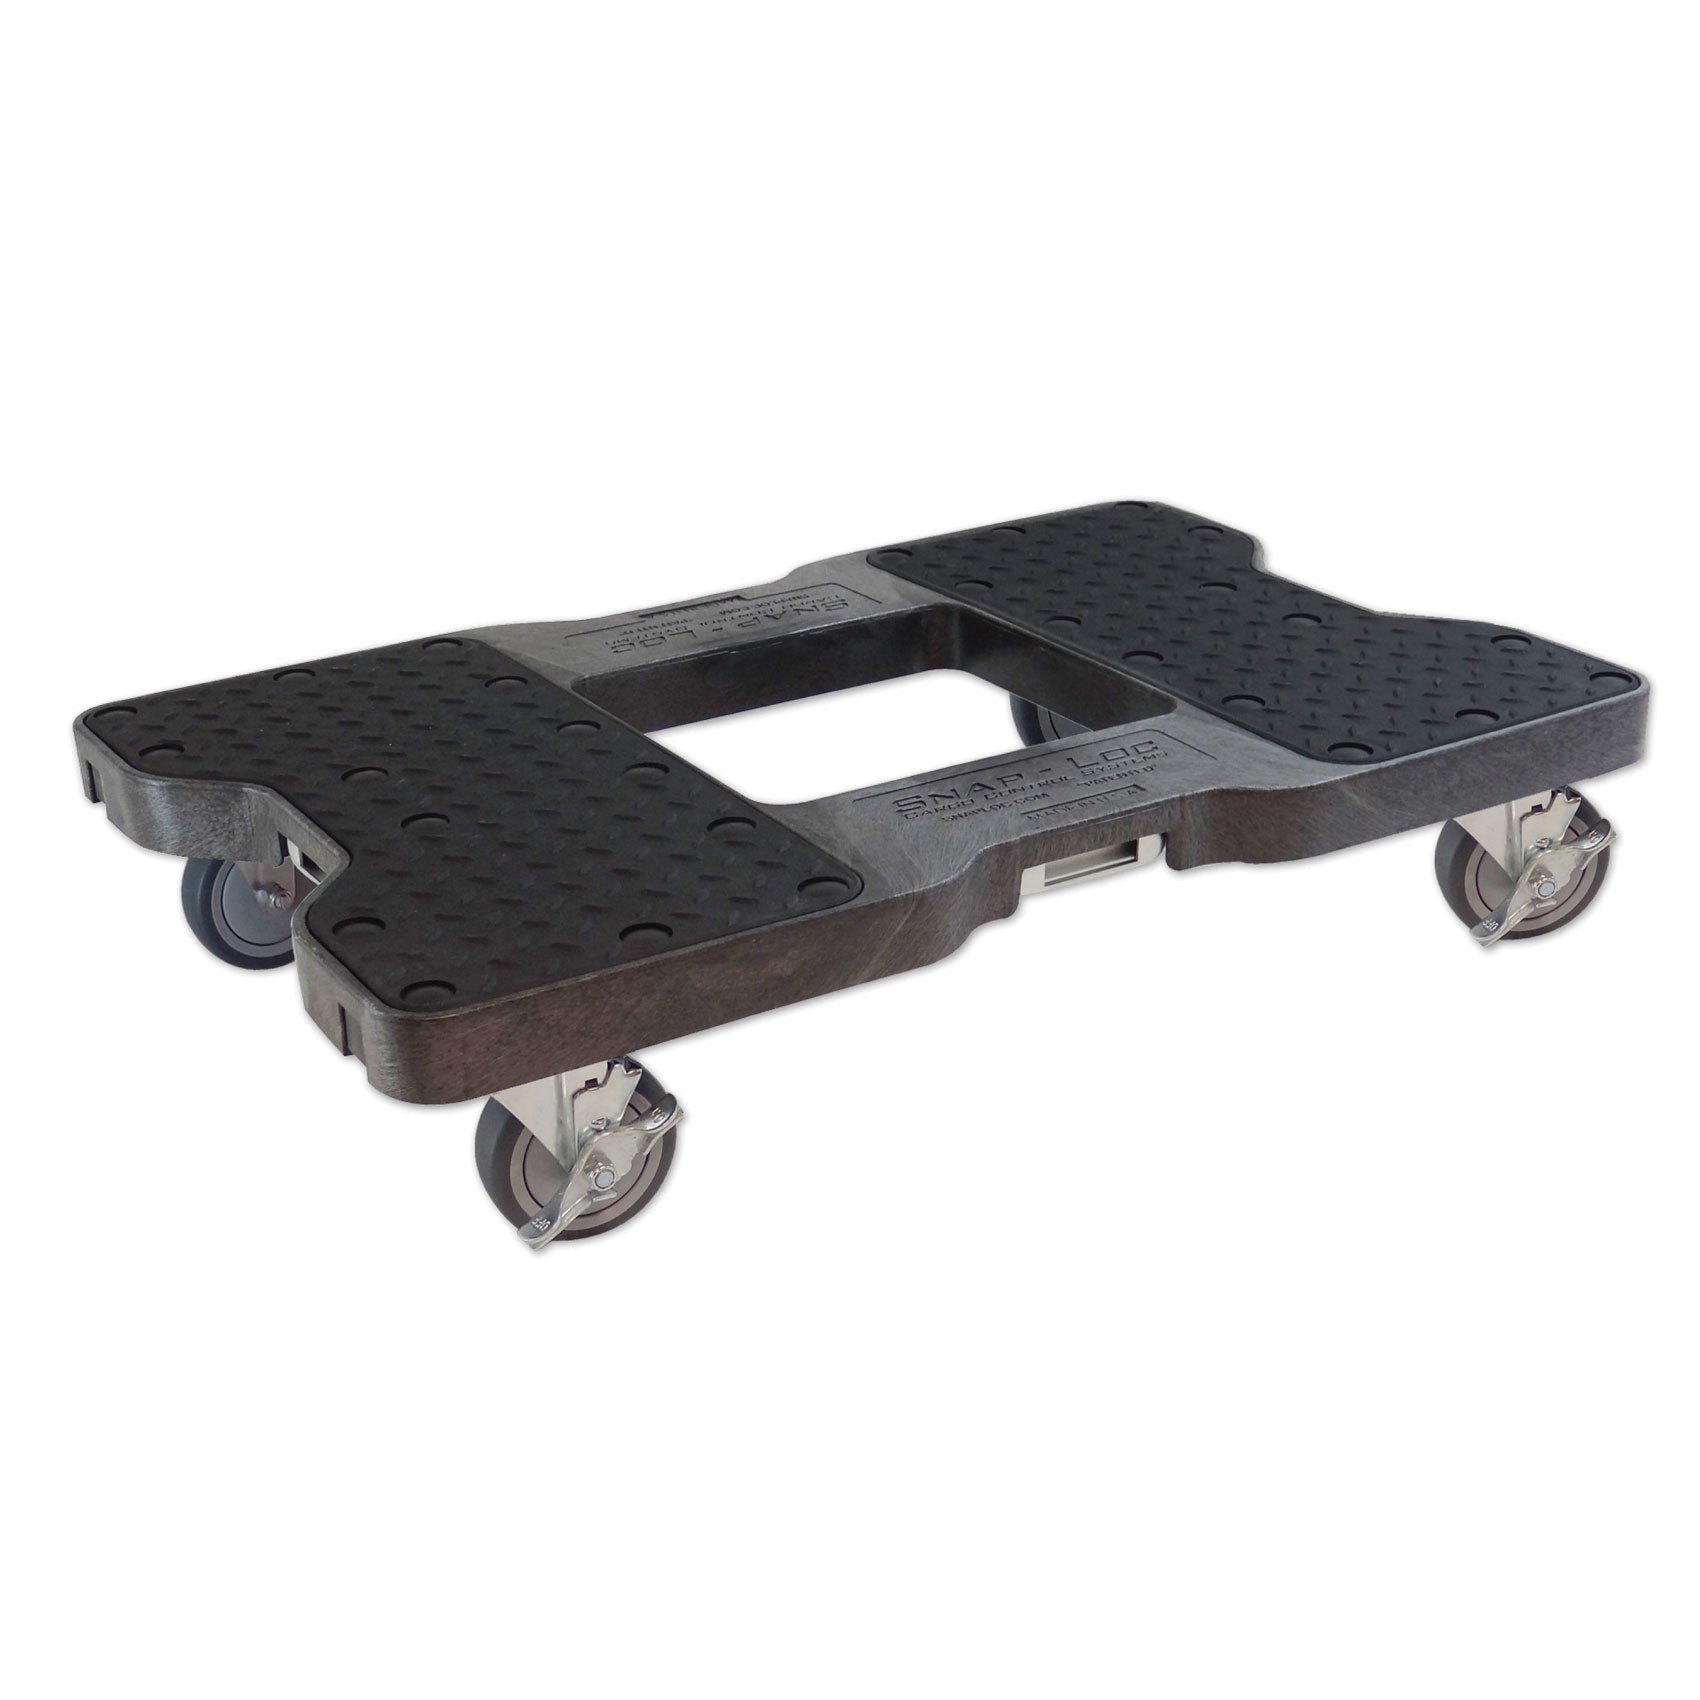 SNAP-LOC DOLLY BLACK (USA!) with 1500 lb Capacity, Steel Frame, 4 inch Casters and optional E-Strap Attachment by Snap-Loc